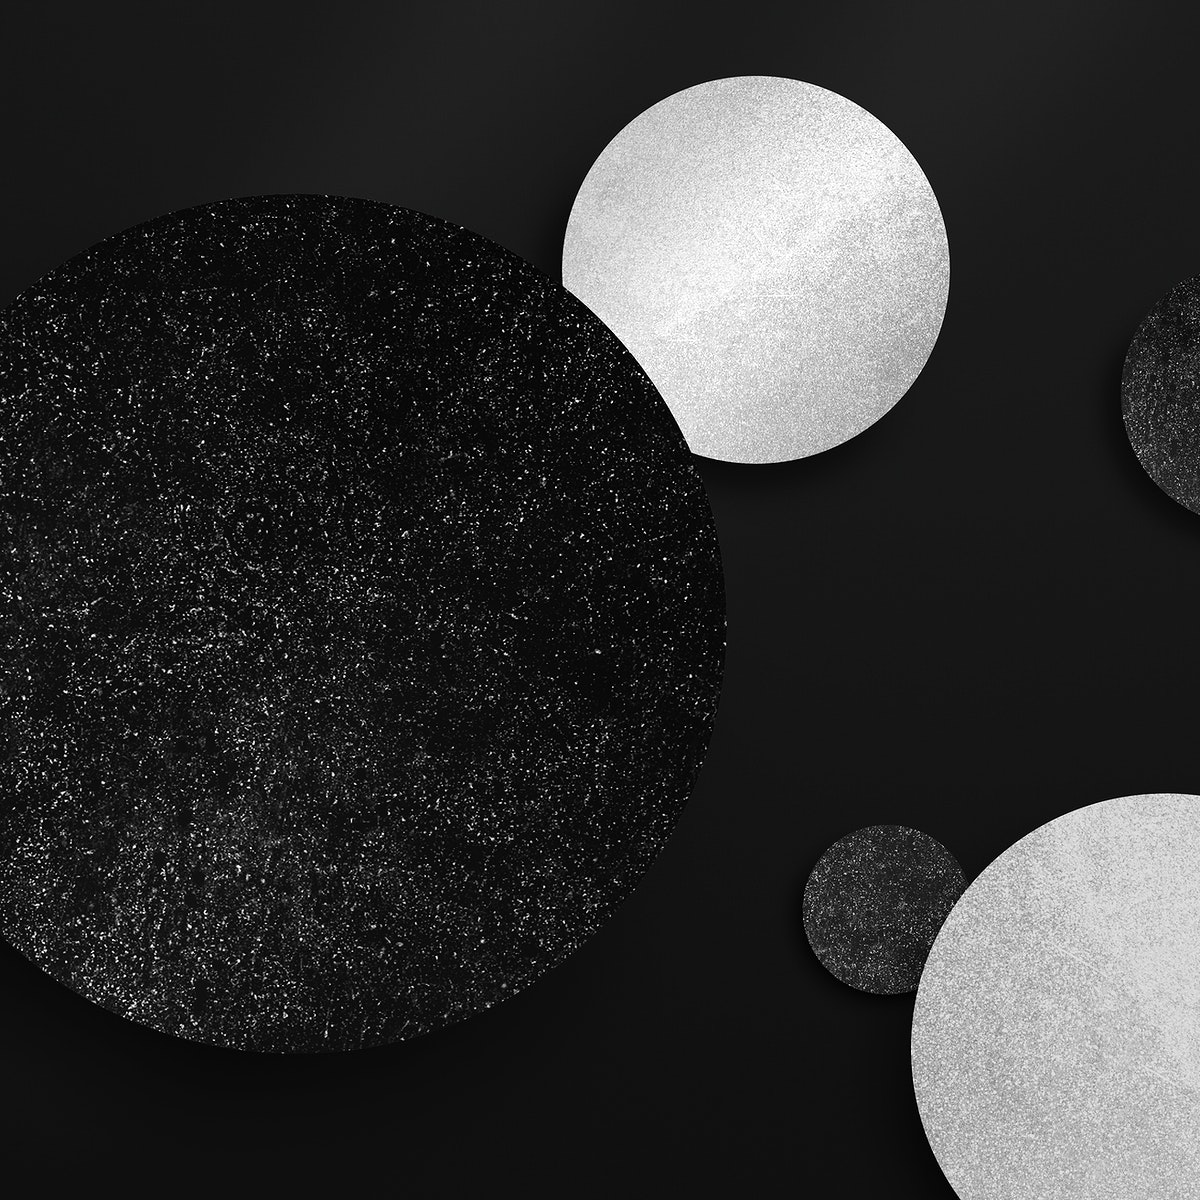 Shimmery black and silver round pattern background vector